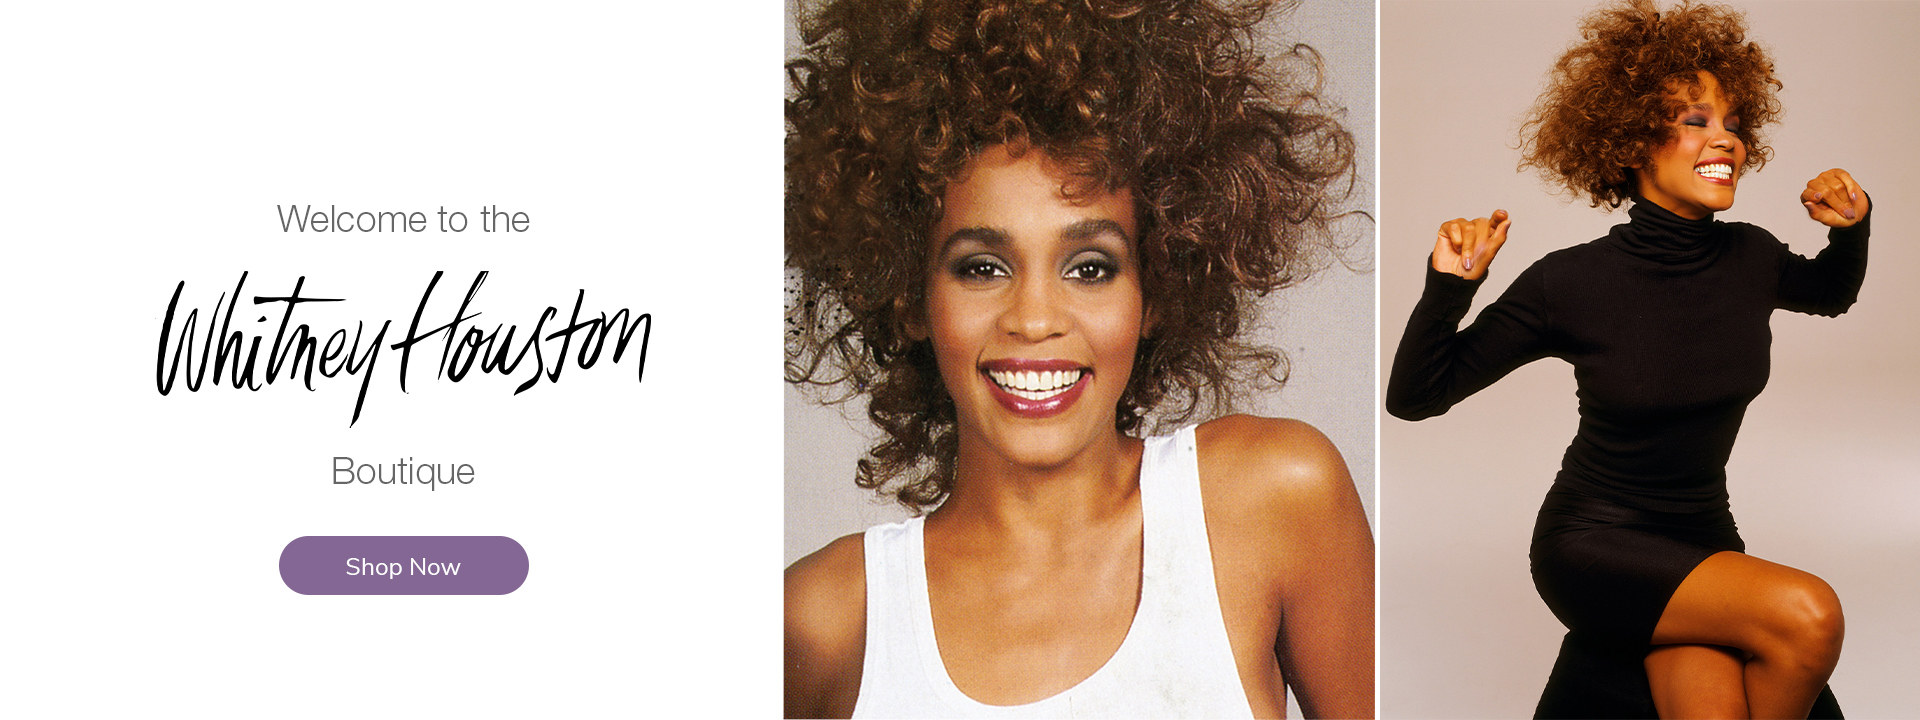 Welcome to the Whitney Houston Boutique. Shop now.